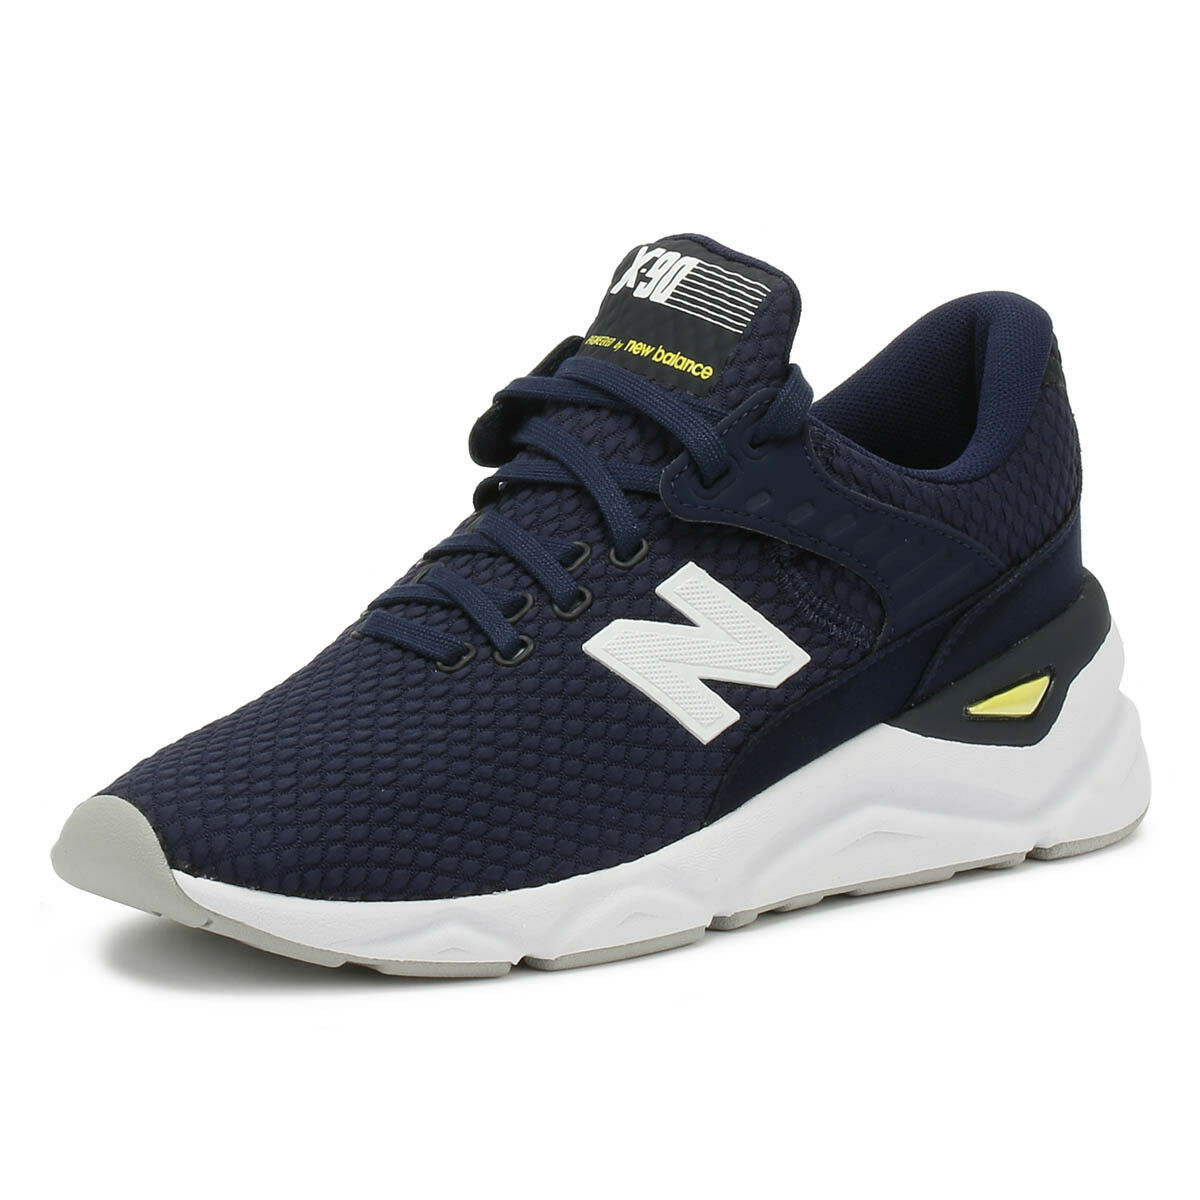 New Balance Mens Trainers X90 Navy   White Casual Lace Up Sport Running shoes